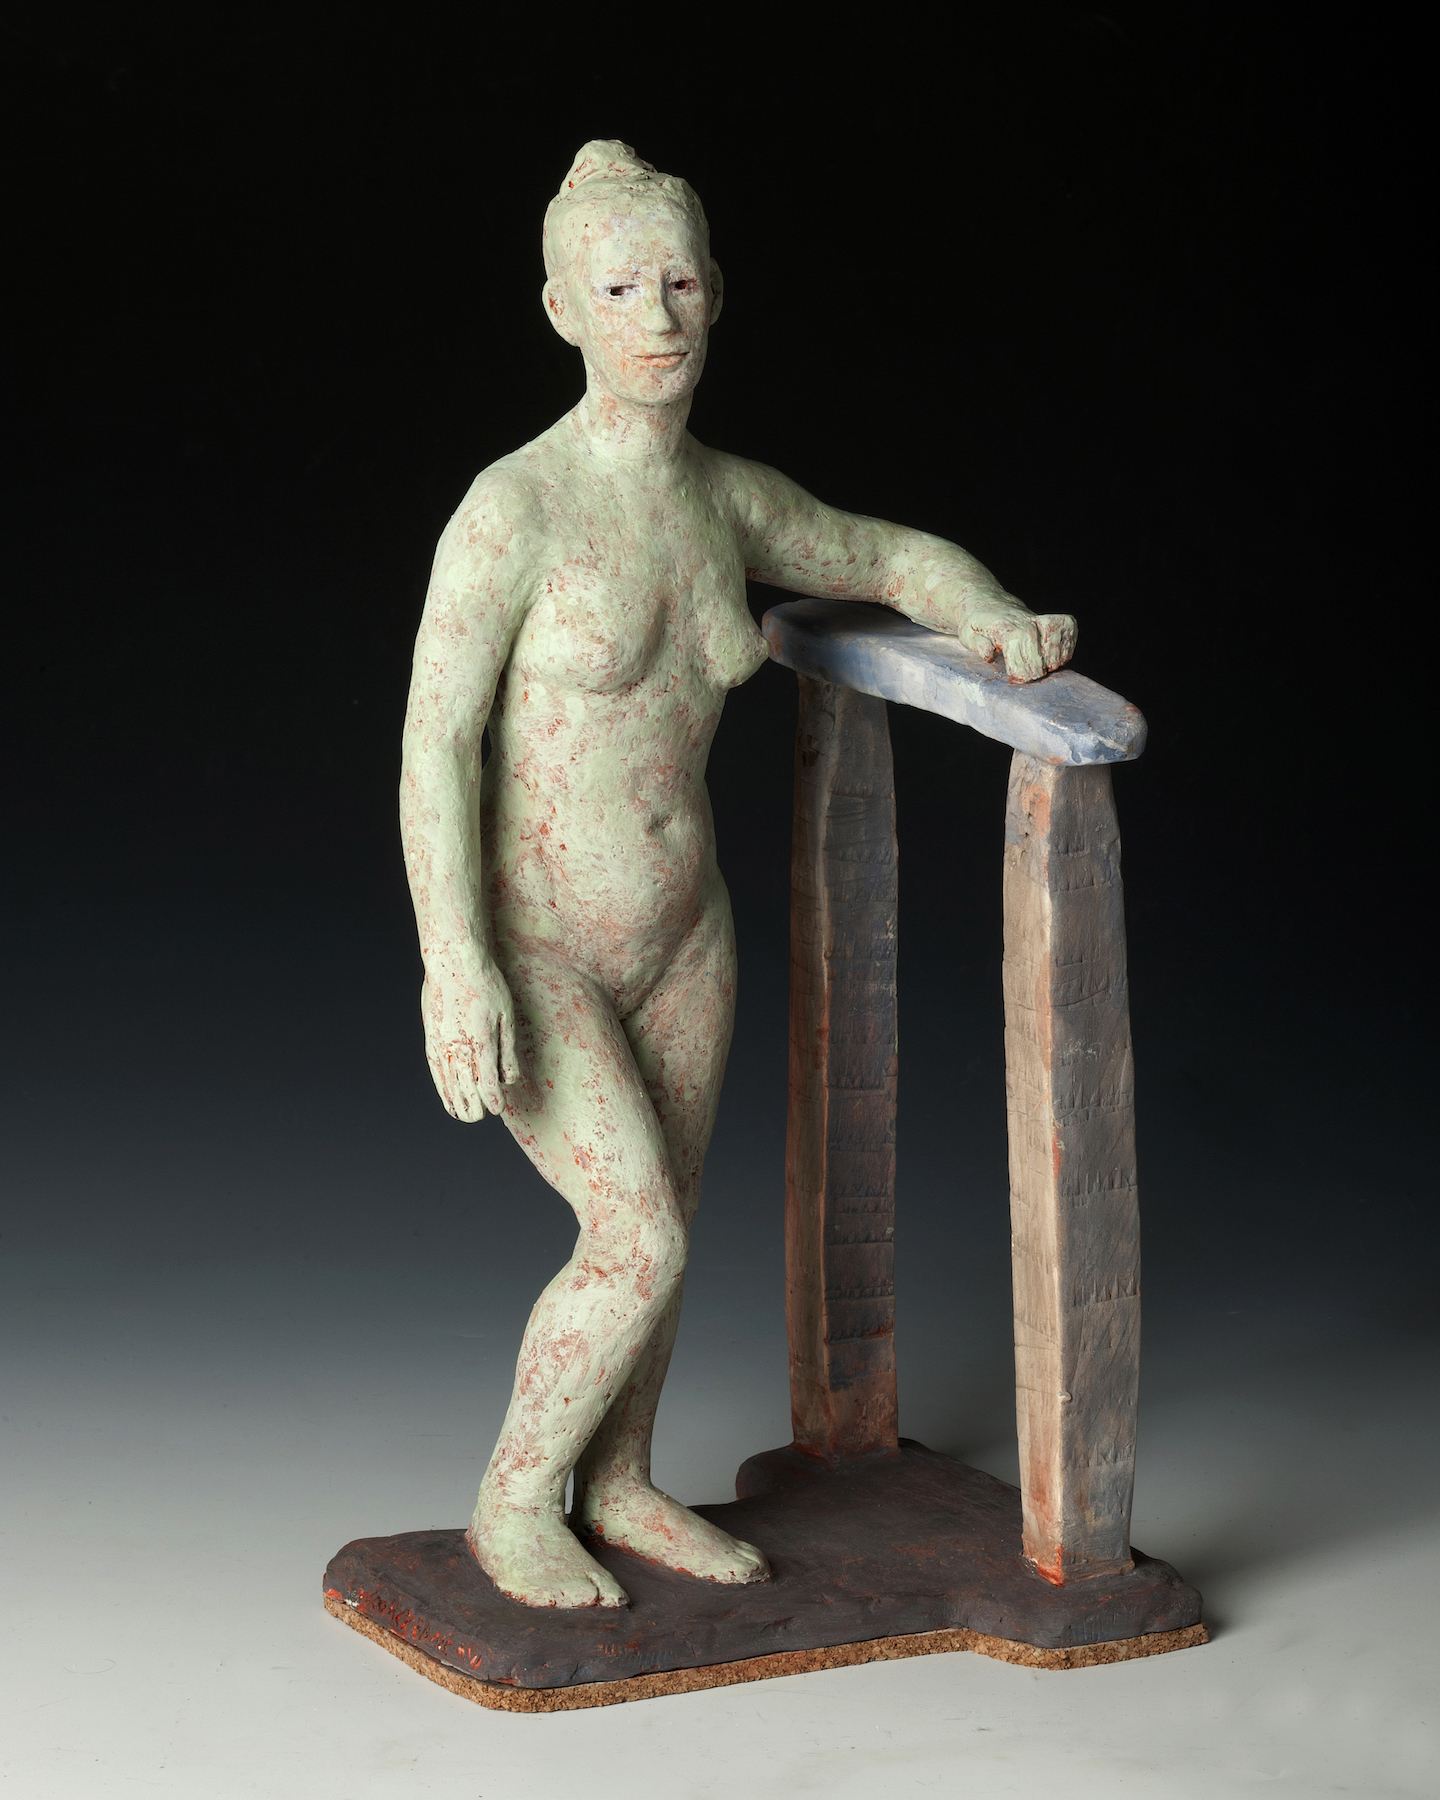 """Leaning on the Past"", polychromed terra cotta, 12""H x x 7""W x 5.5""D, 2013"